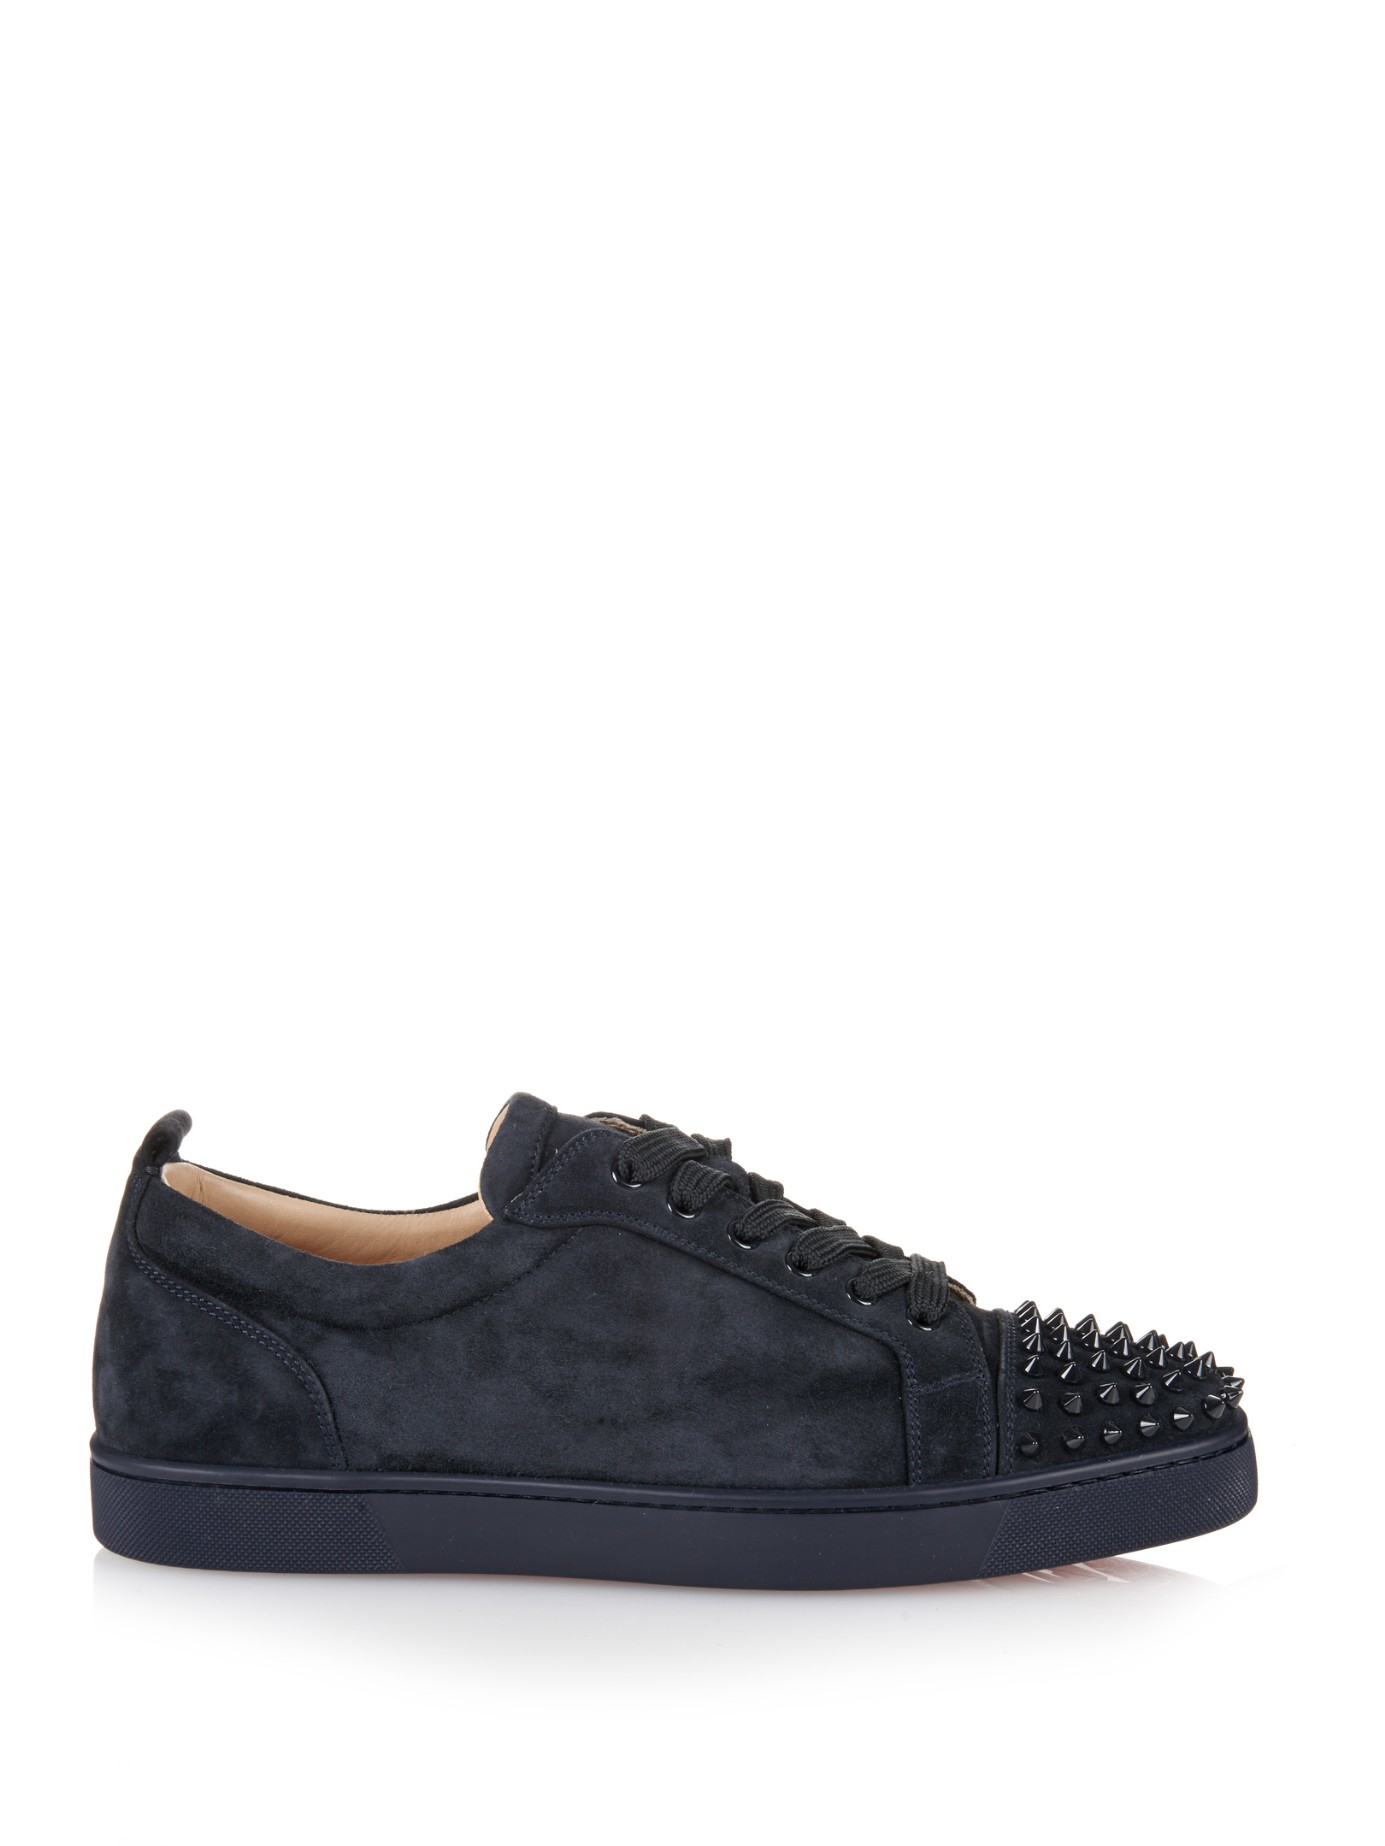 Lyst - Christian Louboutin Louis Suede Low-Top Sneakers in Blue for Men 9c3d30c42c00